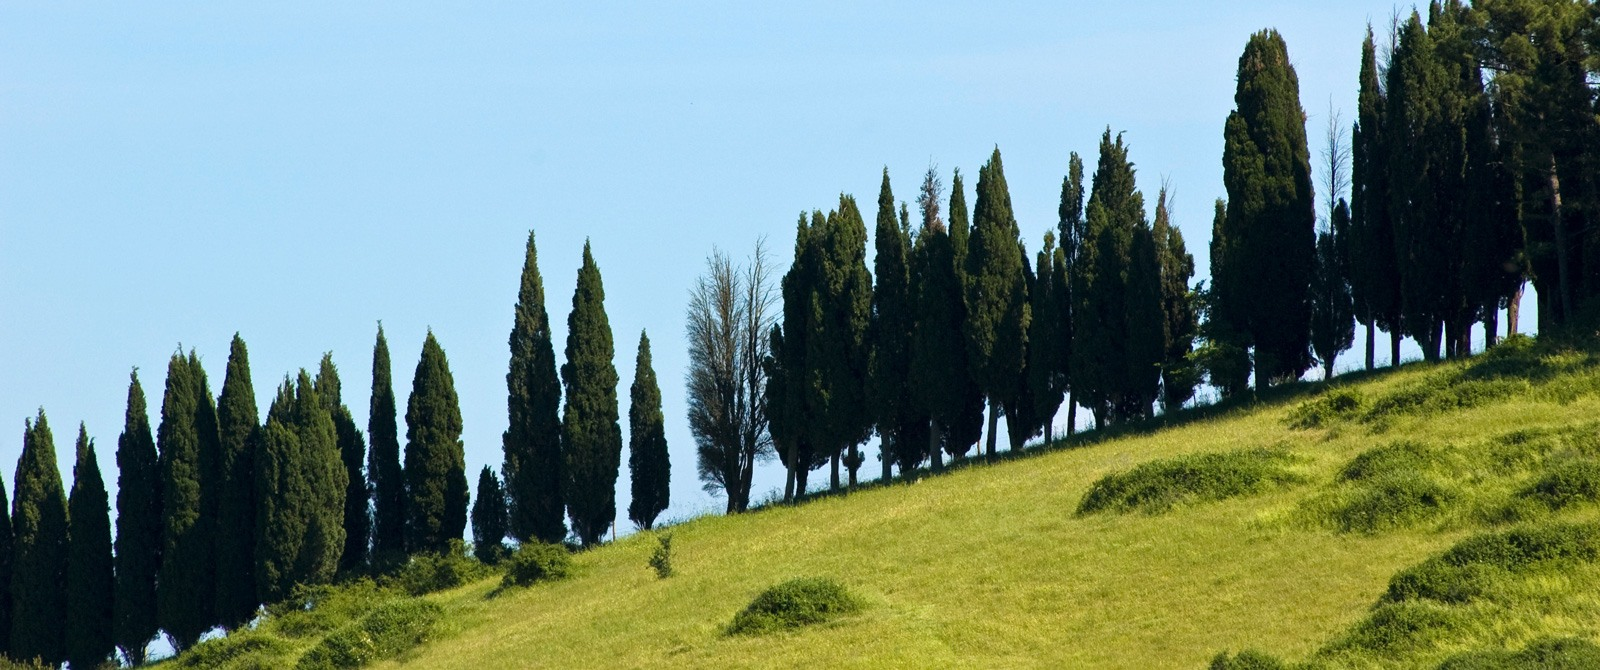 Strade Bianche Bike Tour Cycling In Tuscany